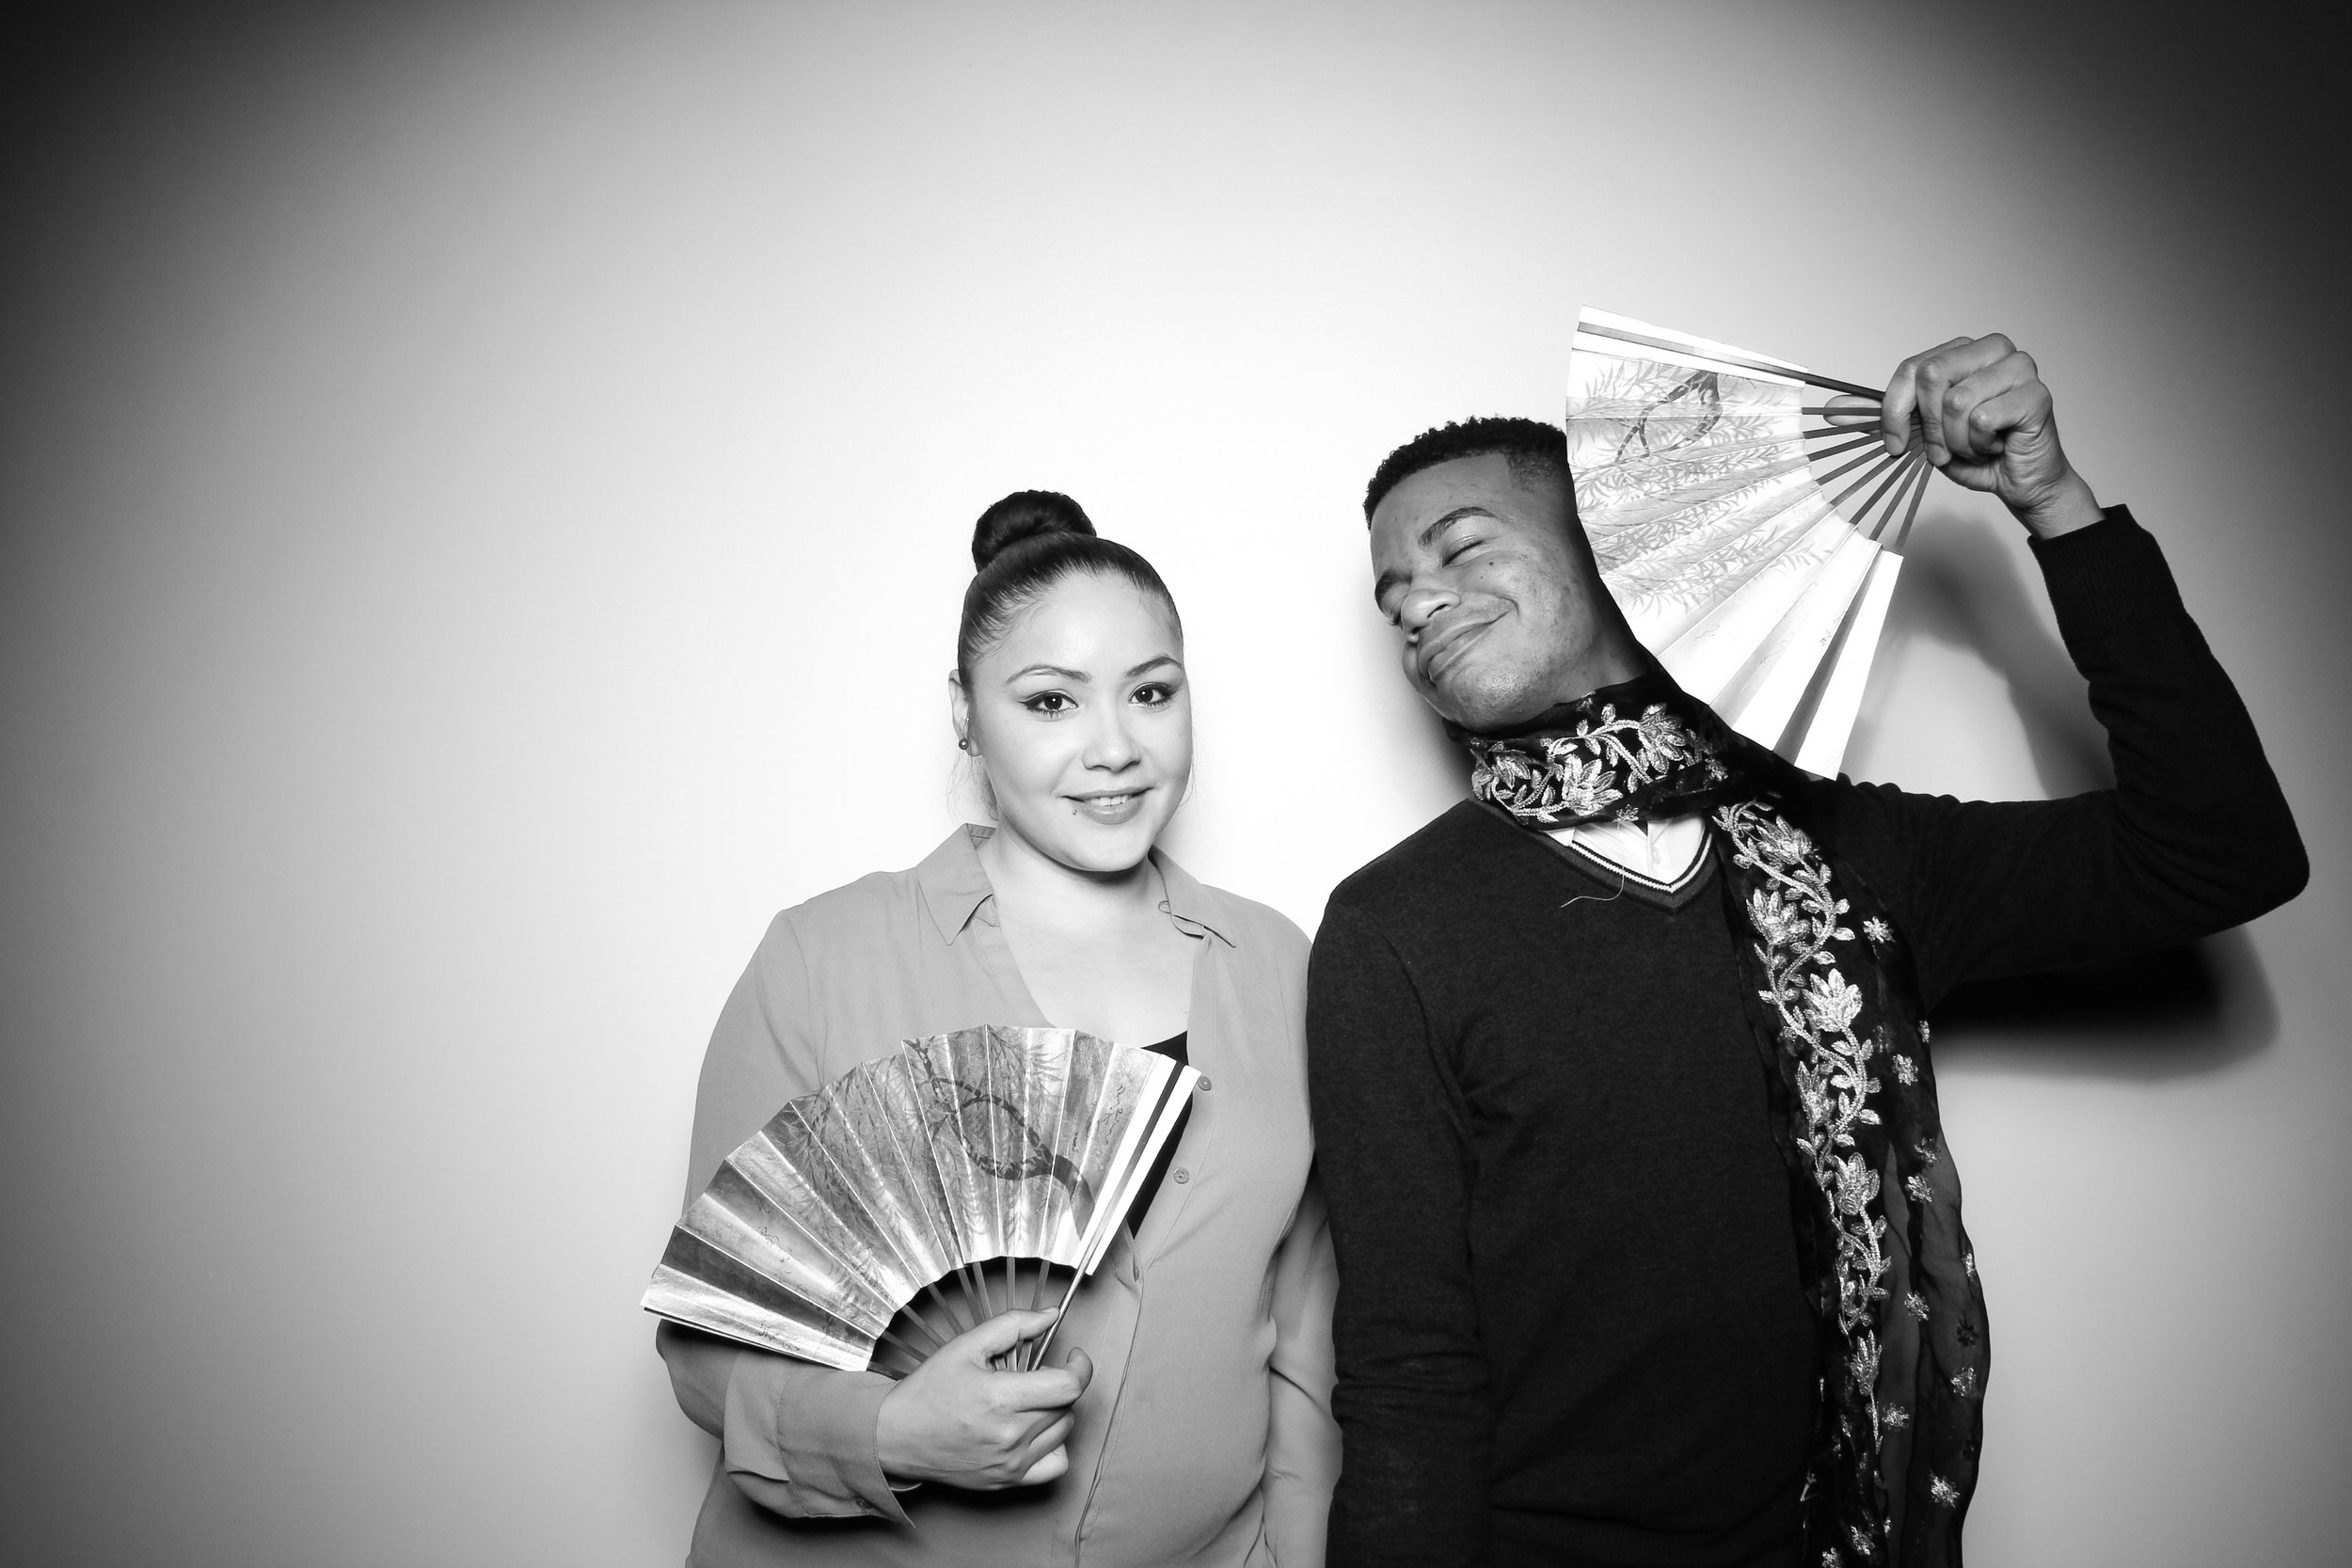 Venue_West_J&L_Catering_Chicago_Photo_Booth_Vitnage__07.jpg